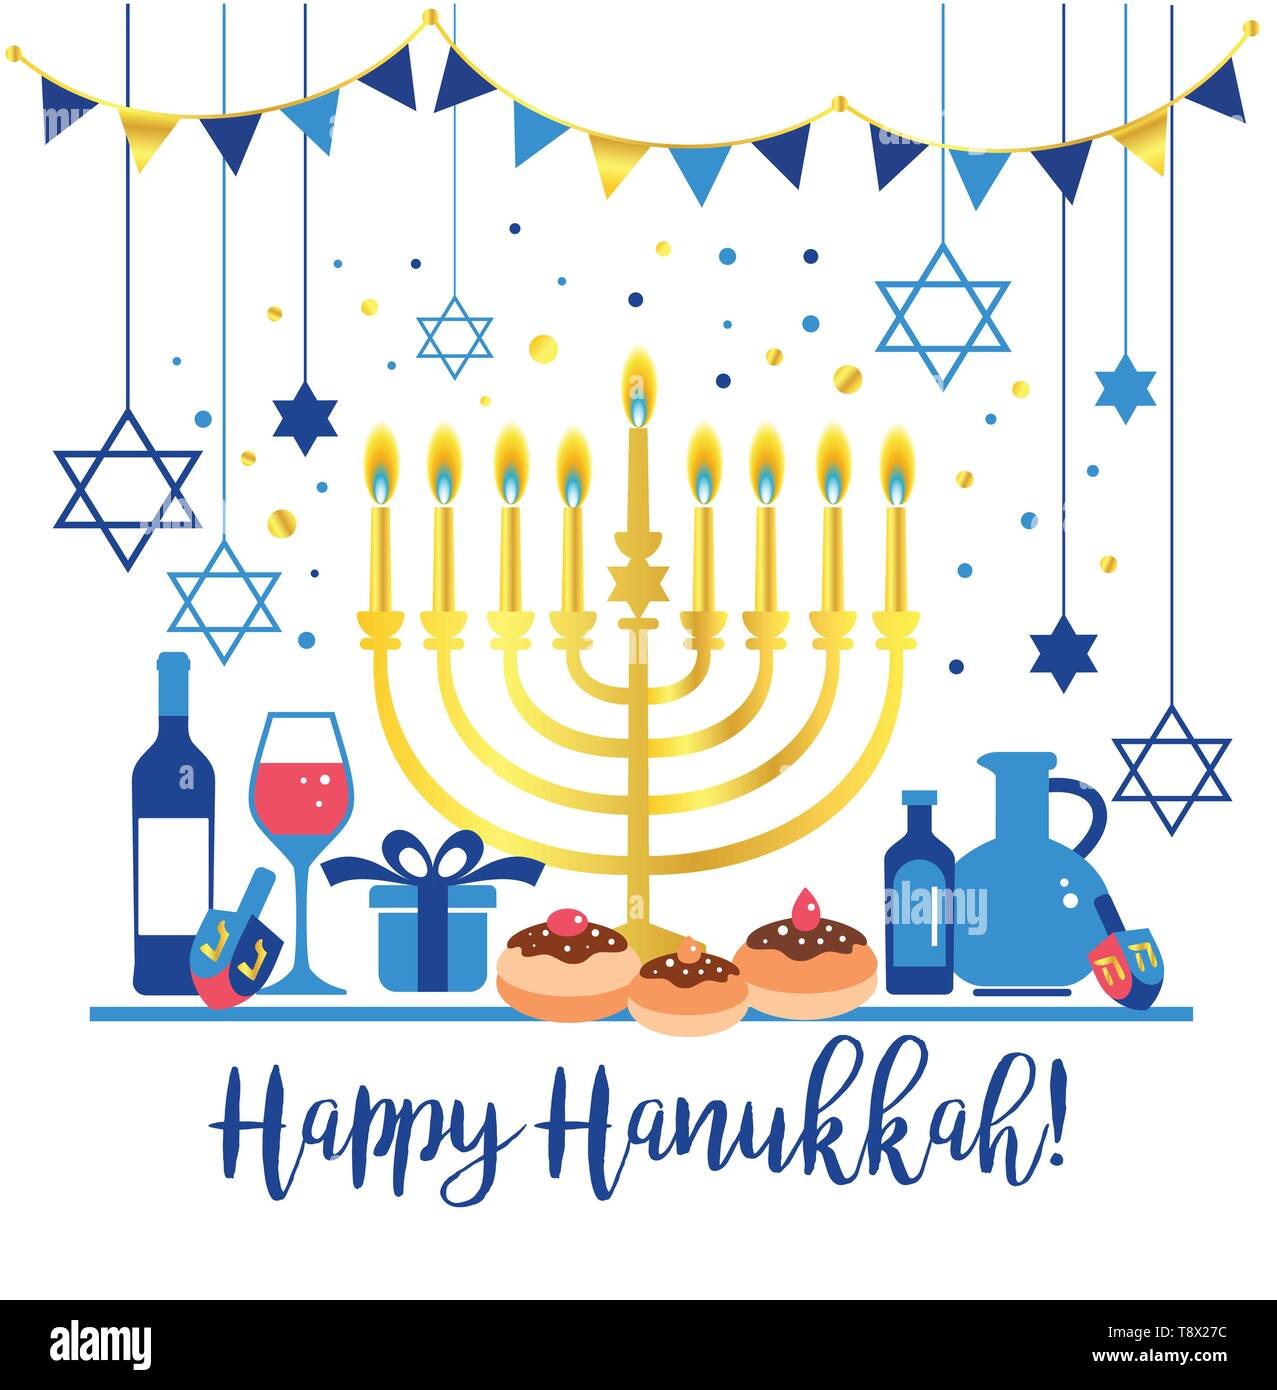 Jewish holiday Hanukkah greeting card traditional Chanukah symbols - wooden dreidels spinning top , Hebrew letters, donuts, menorah candles, oil jar - Stock Vector